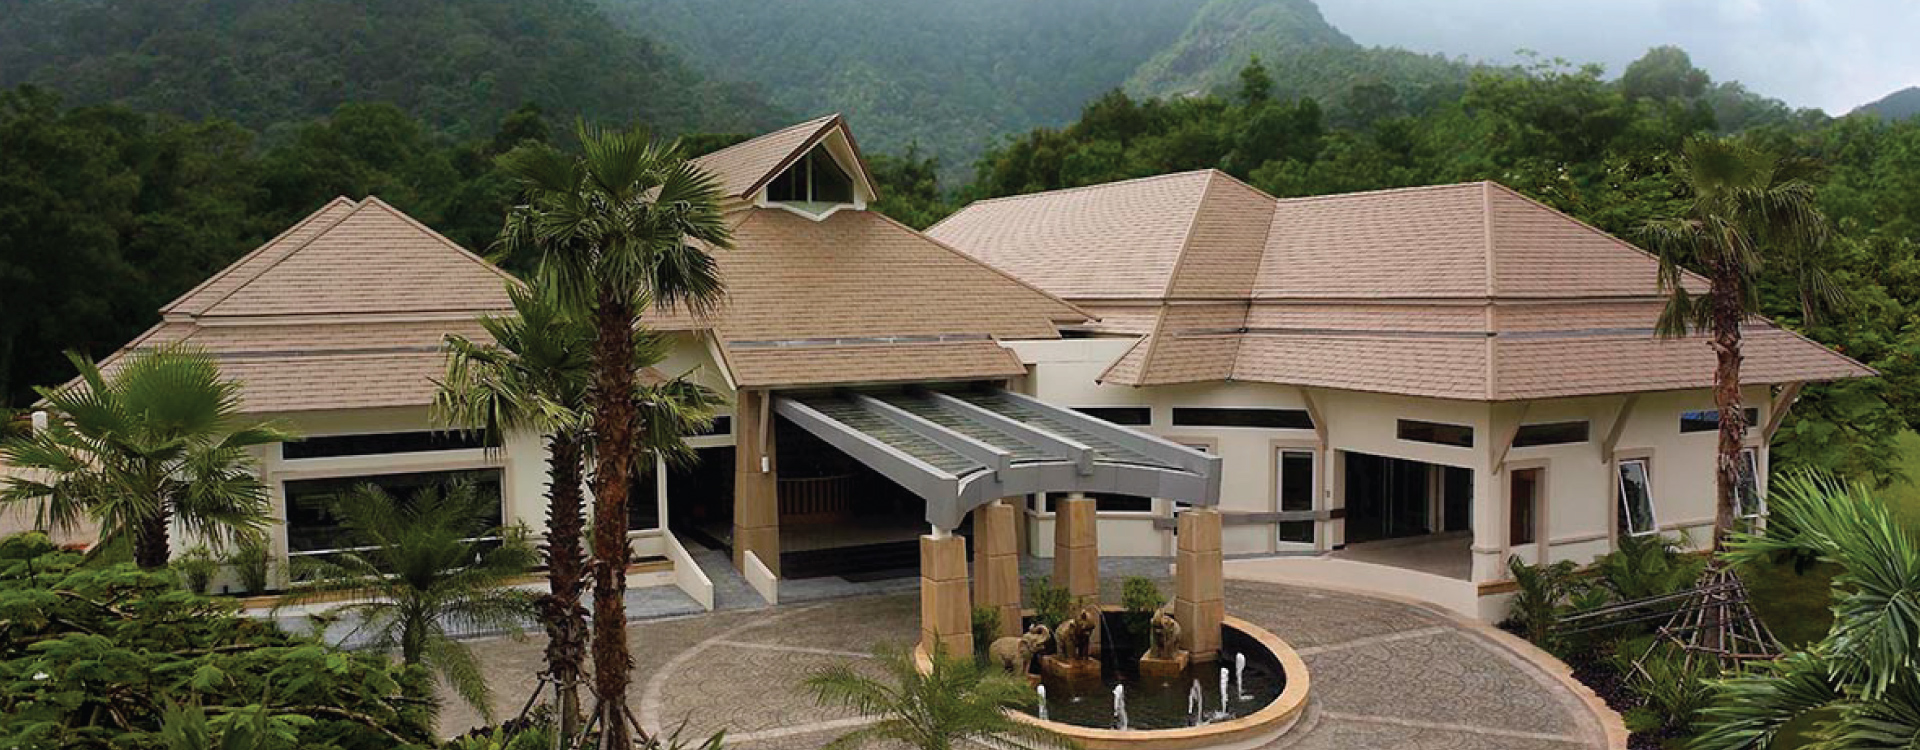 Koh Chang International Hospital by Bangkok Hospital Trat